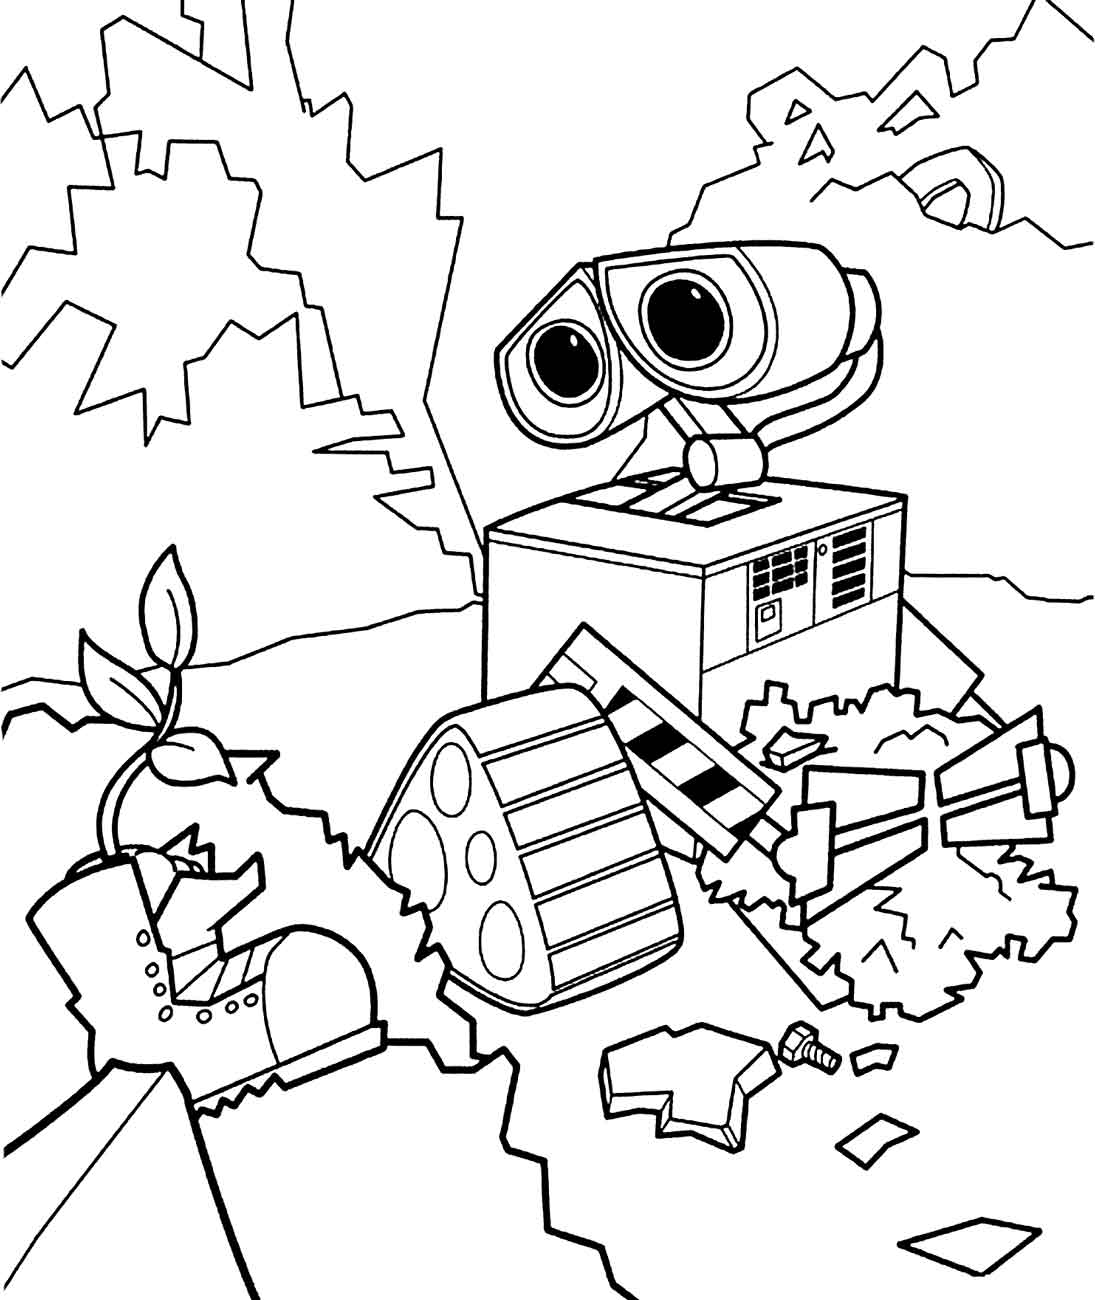 Real Steel Robot Coloring Pages At Getdrawings Com Free For